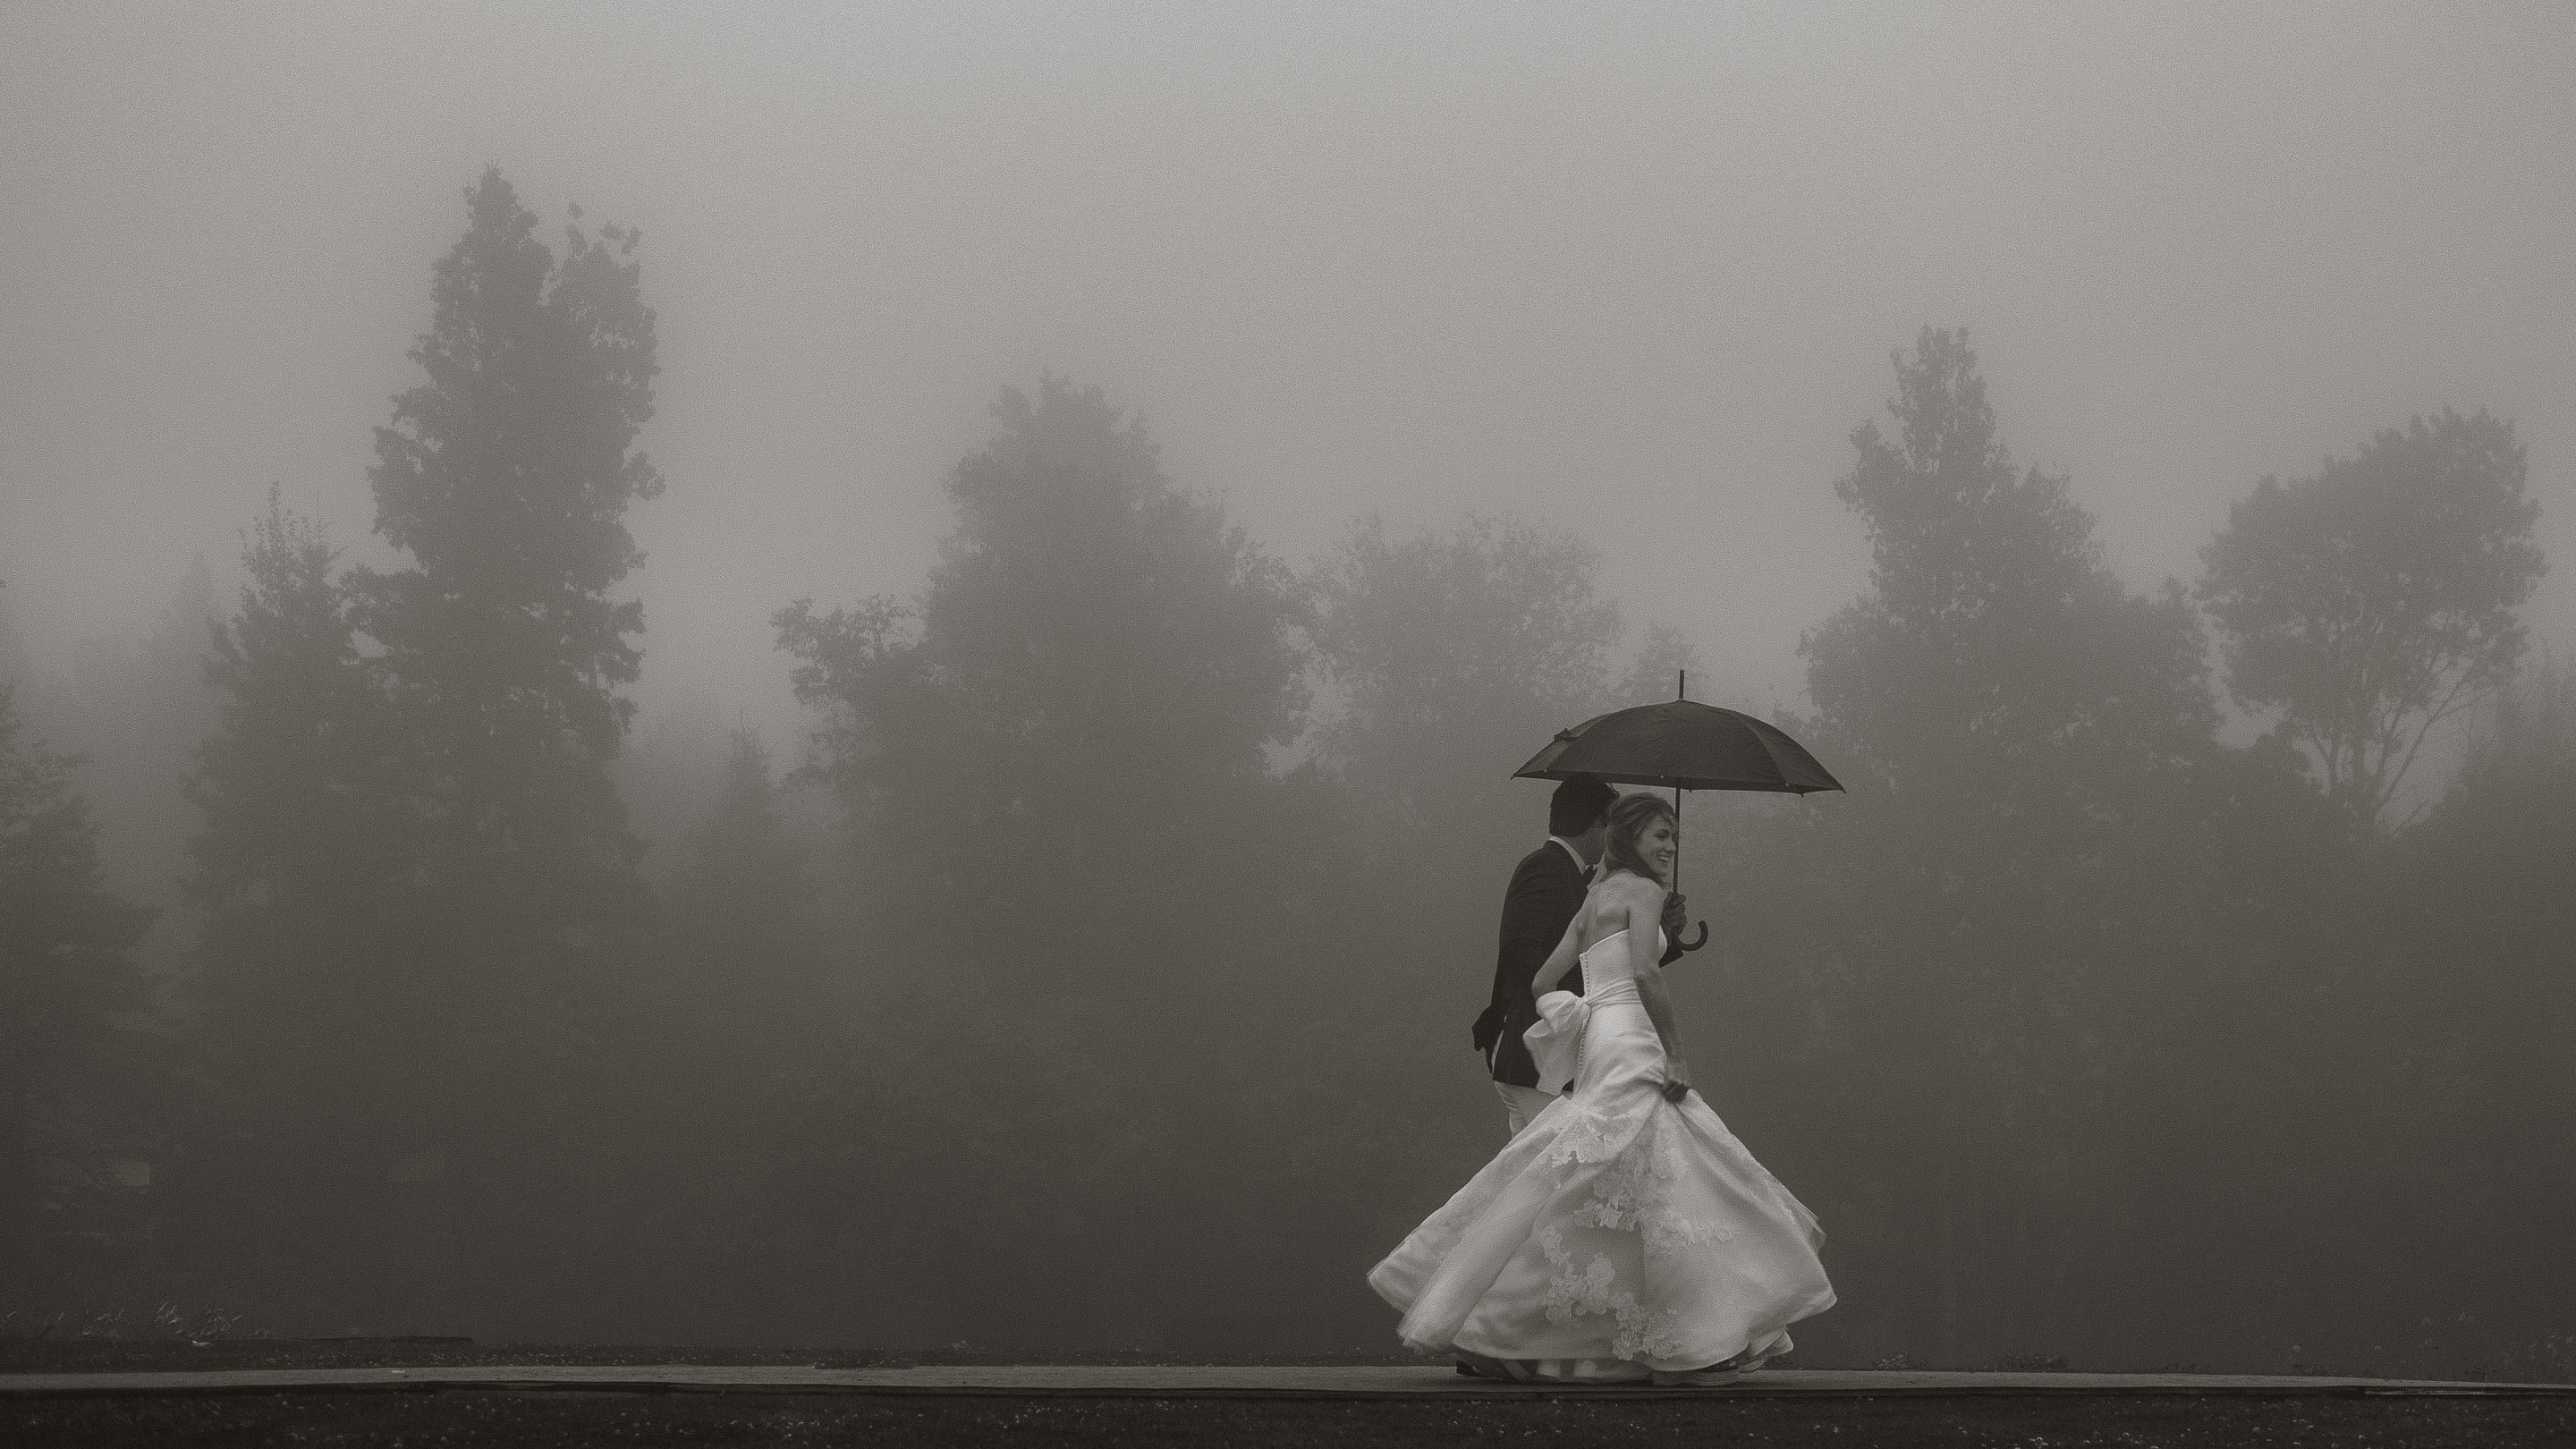 couple-walk-with-umbrella-against-misty-trees-joel-and-justyna